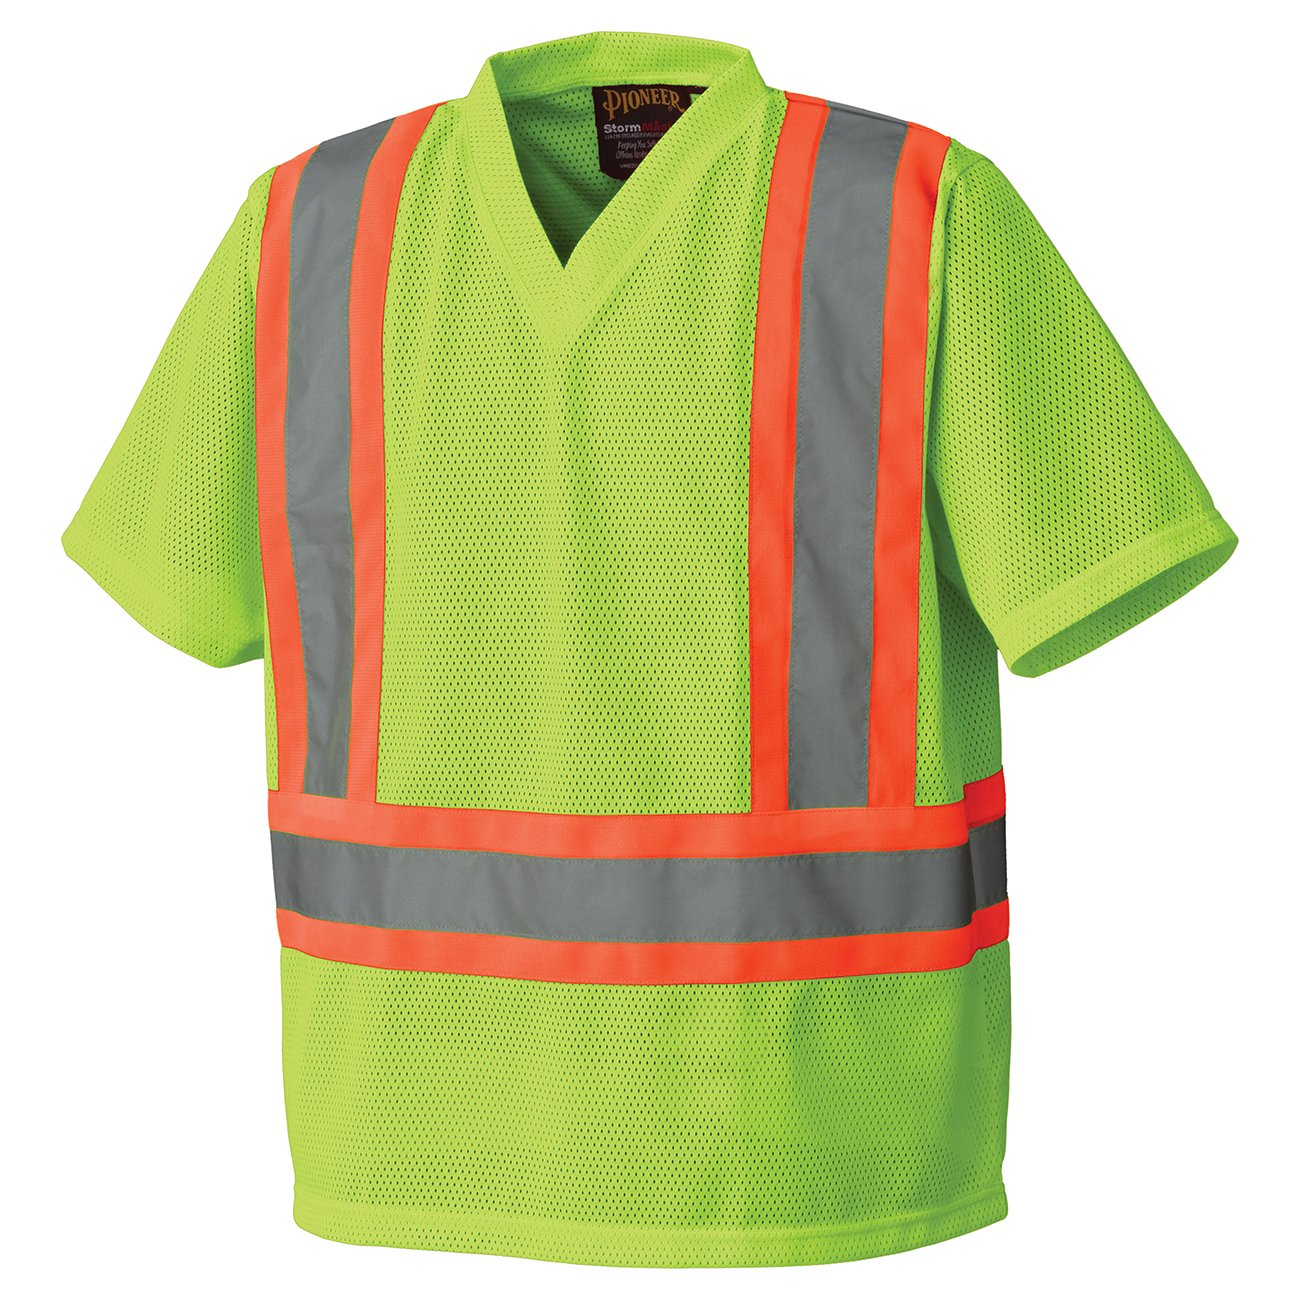 Pioneer V1050450-3XL Hi-Vis Traffic Safety T-Shirt, Mesh, Orange, 3XL